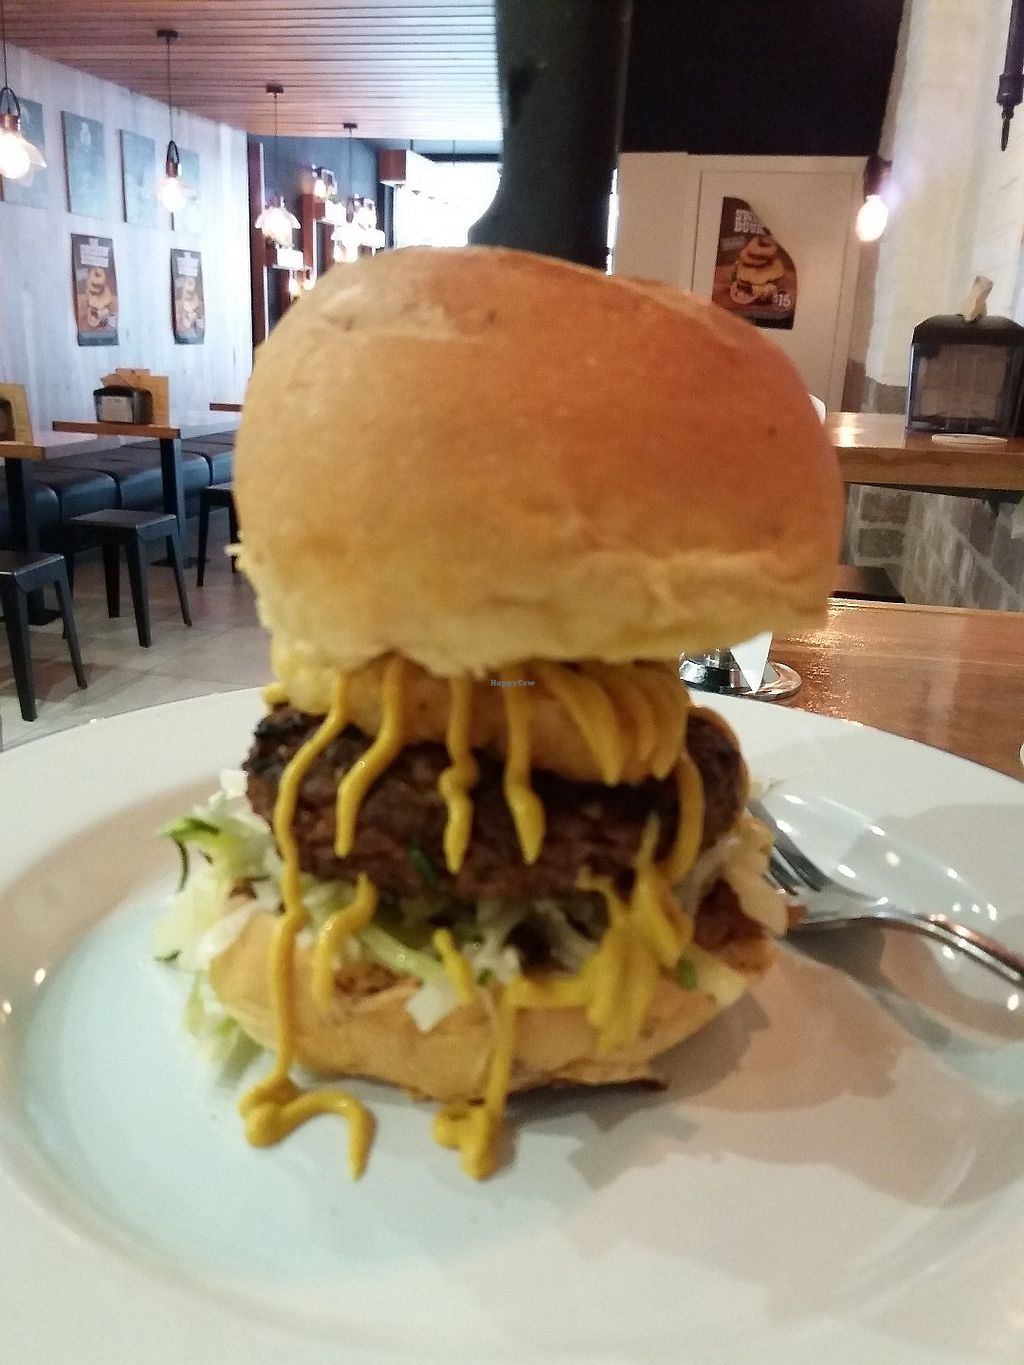 """Photo of Soul Burger  by <a href=""""/members/profile/veganvirtues"""">veganvirtues</a> <br/>The American Badass <br/> June 8, 2017  - <a href='/contact/abuse/image/92906/266843'>Report</a>"""